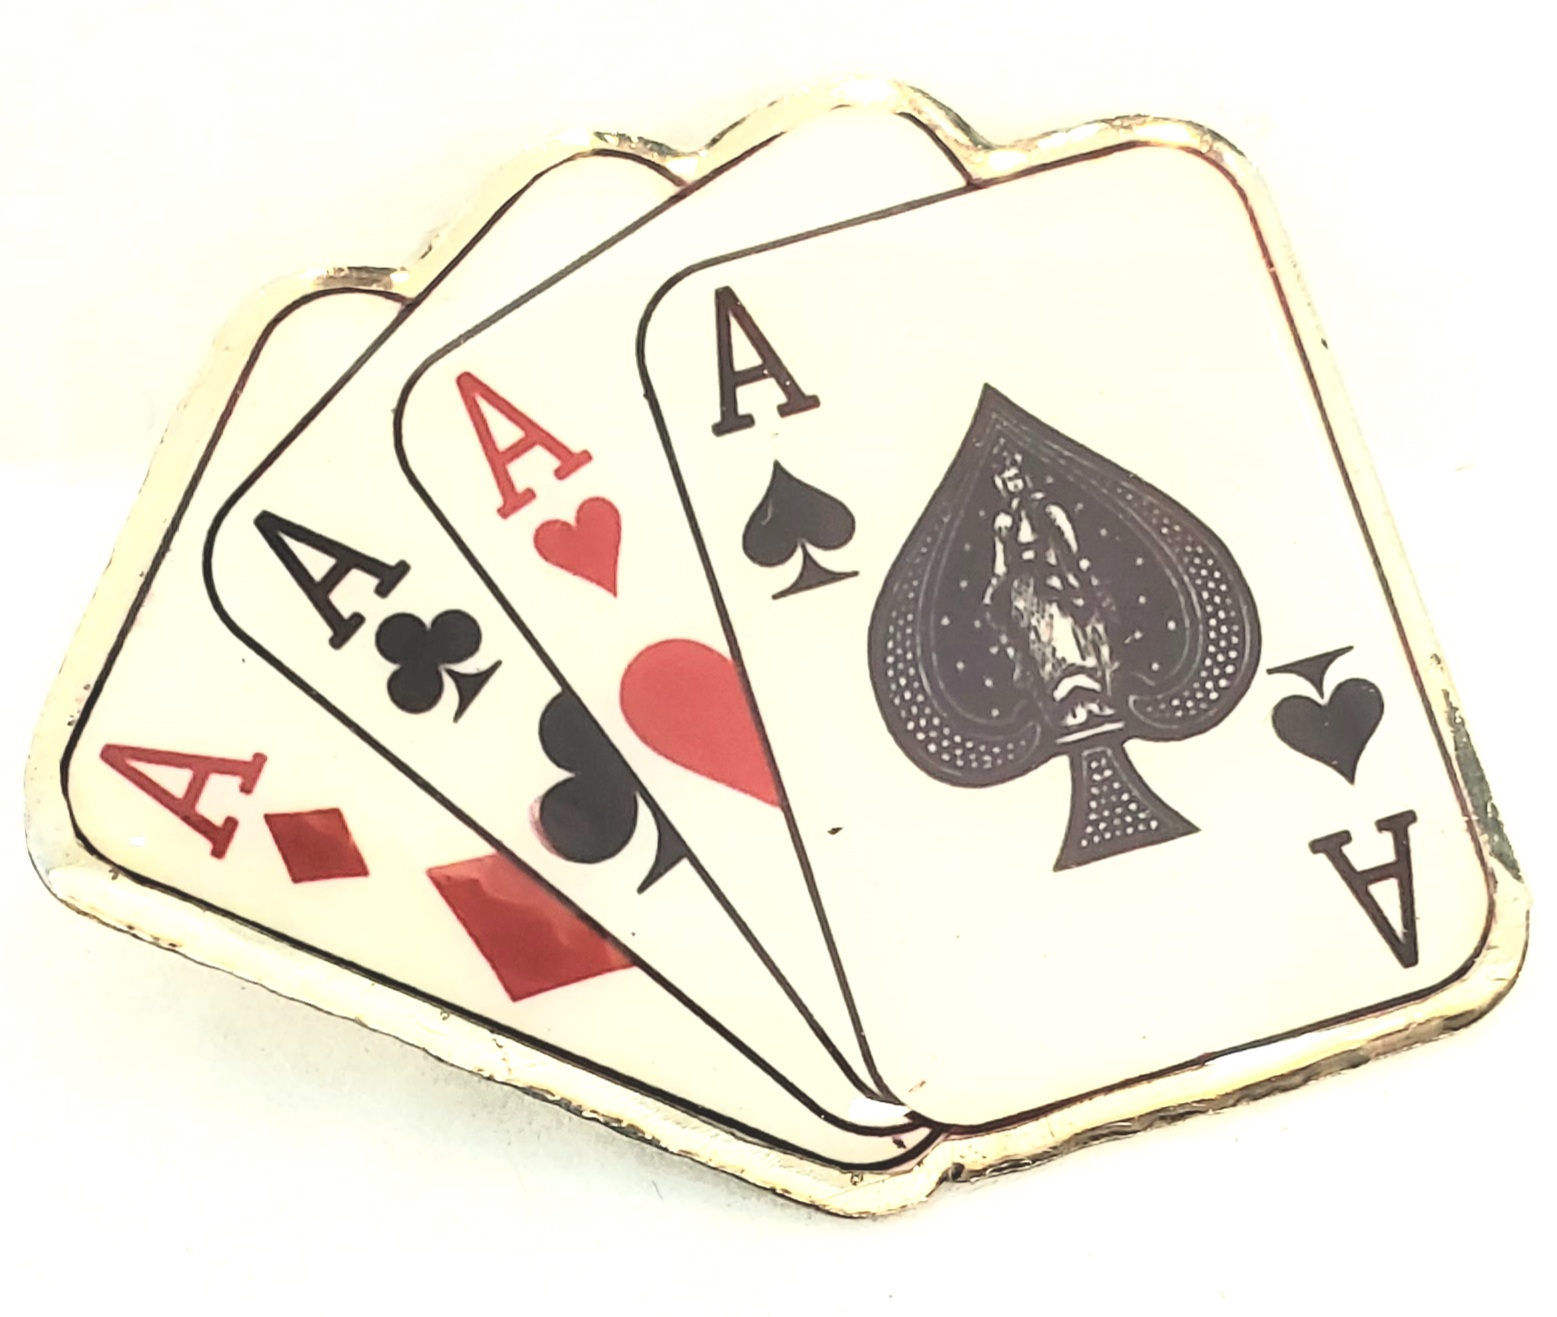 Magician's Lapel Pin - 4 Aces (FT)